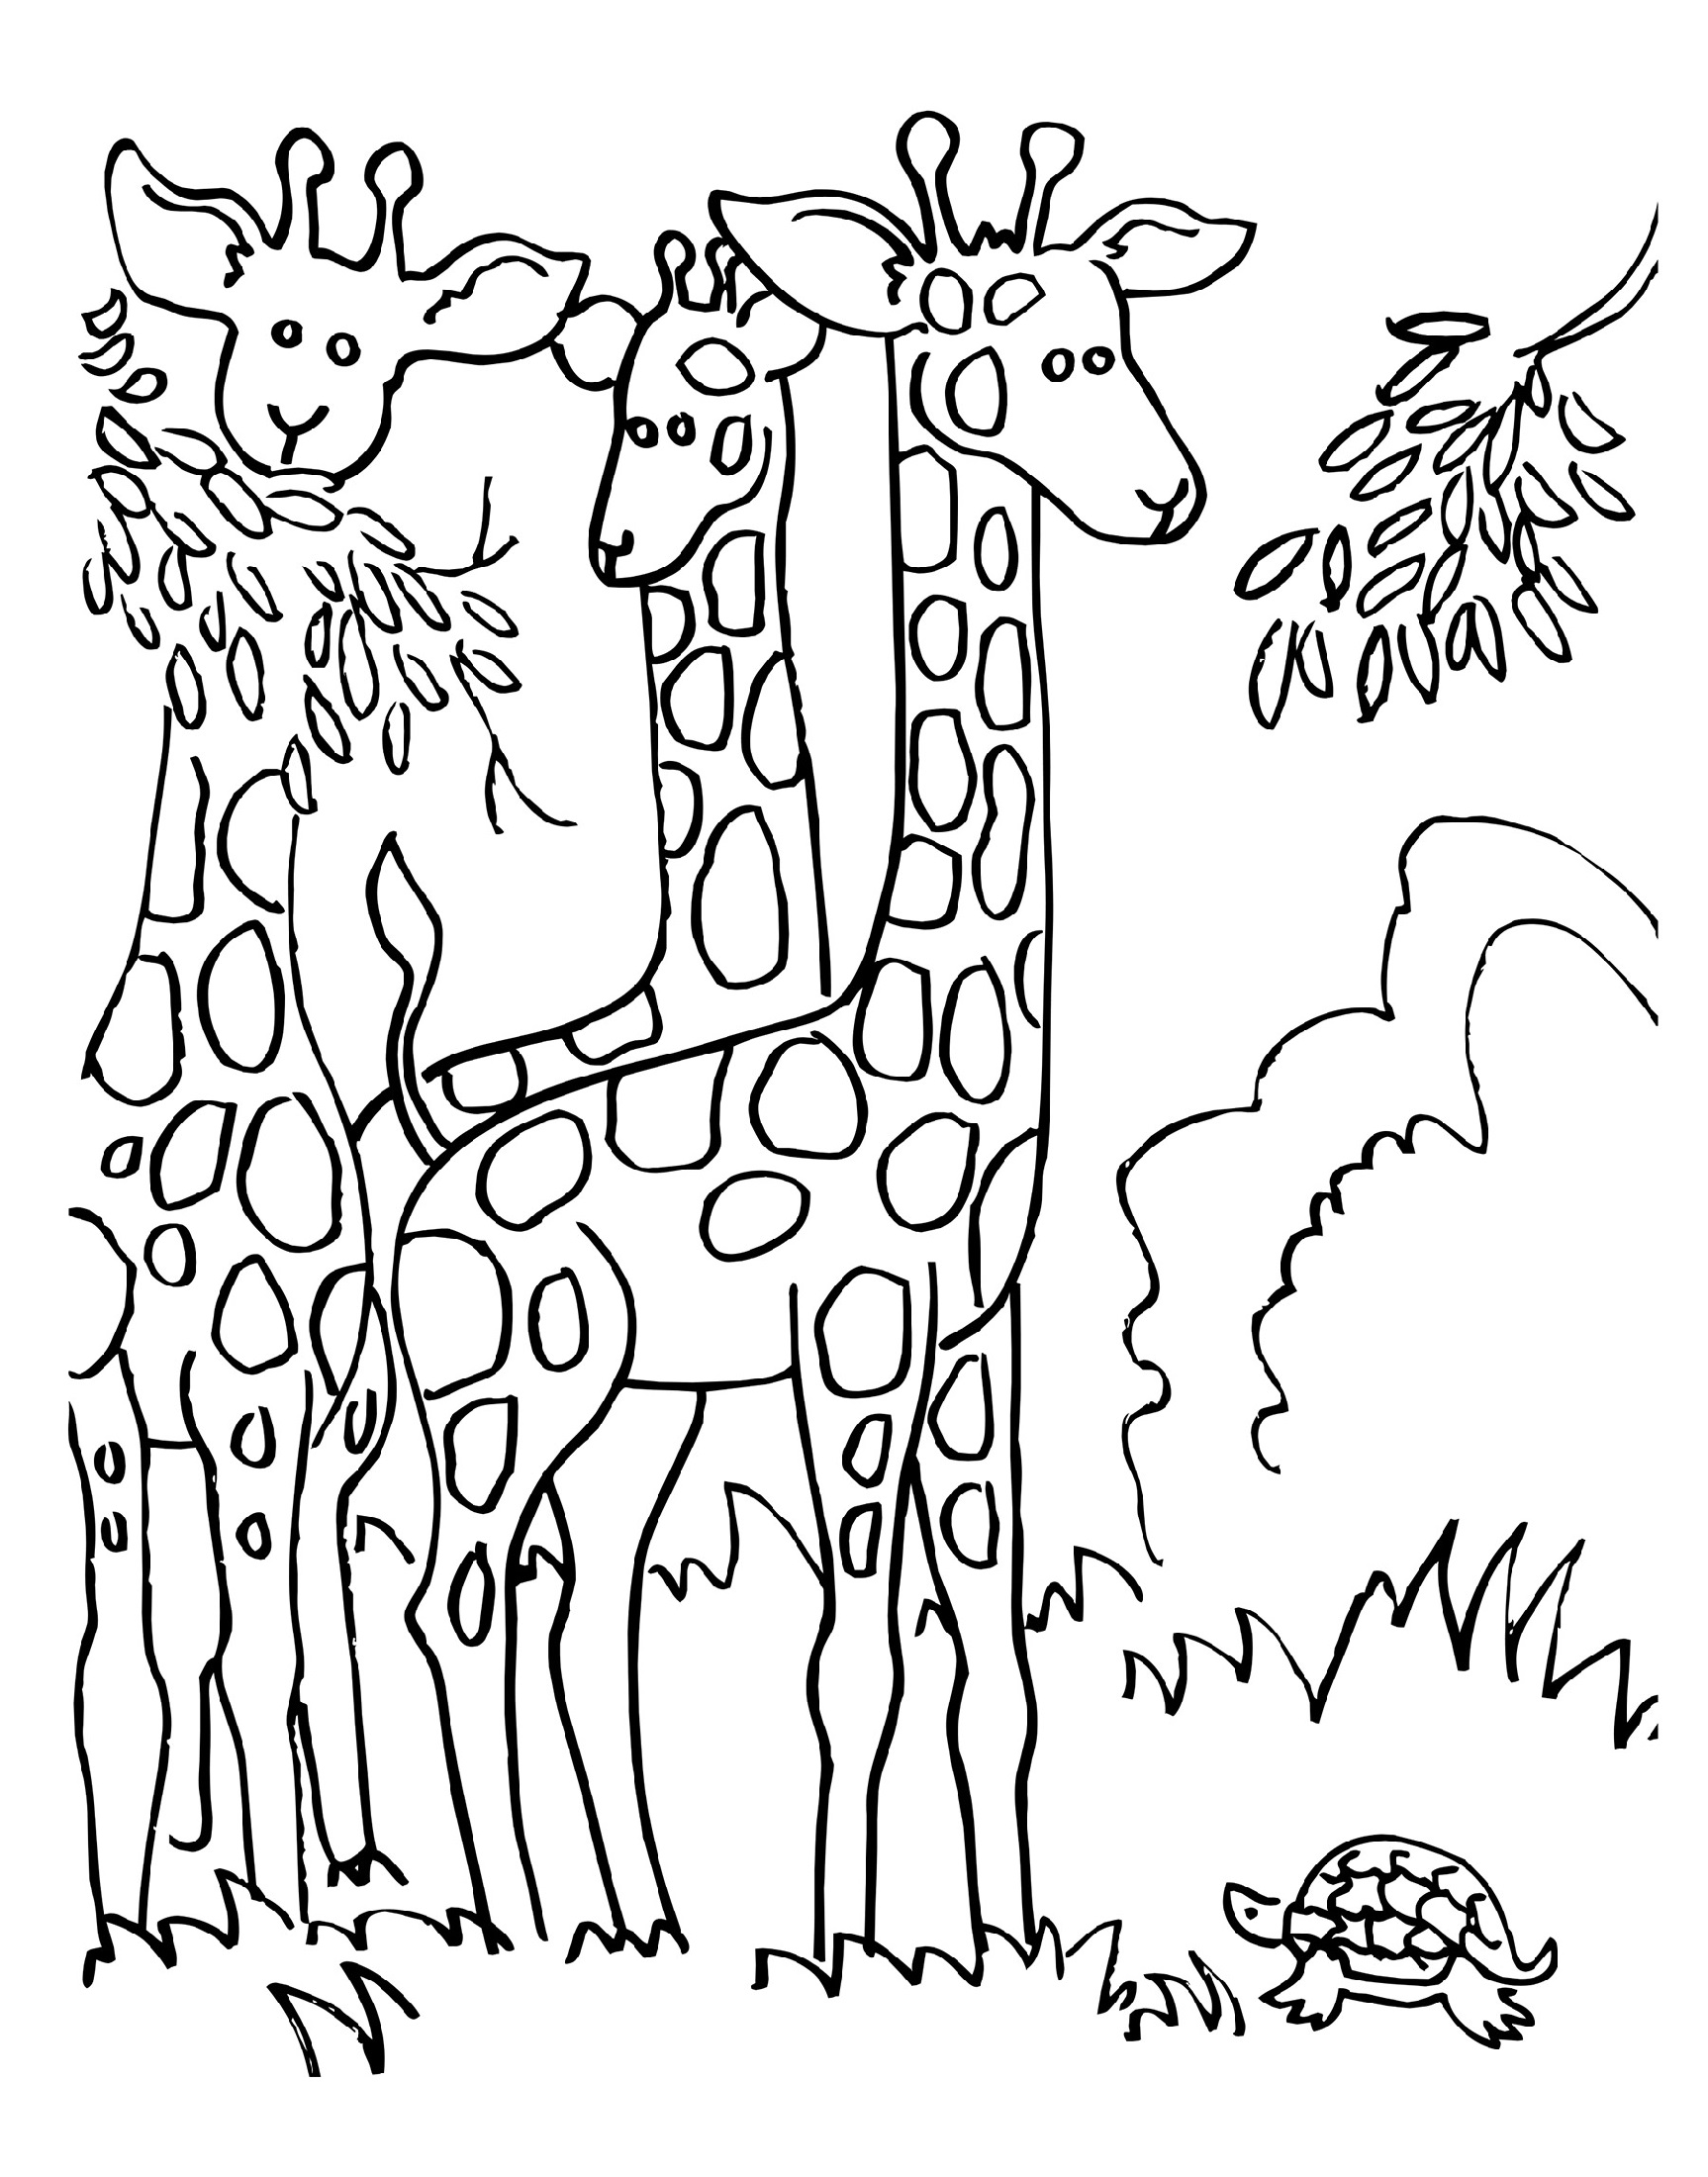 Giraffe Coloring Pages to Print | 101 Coloring